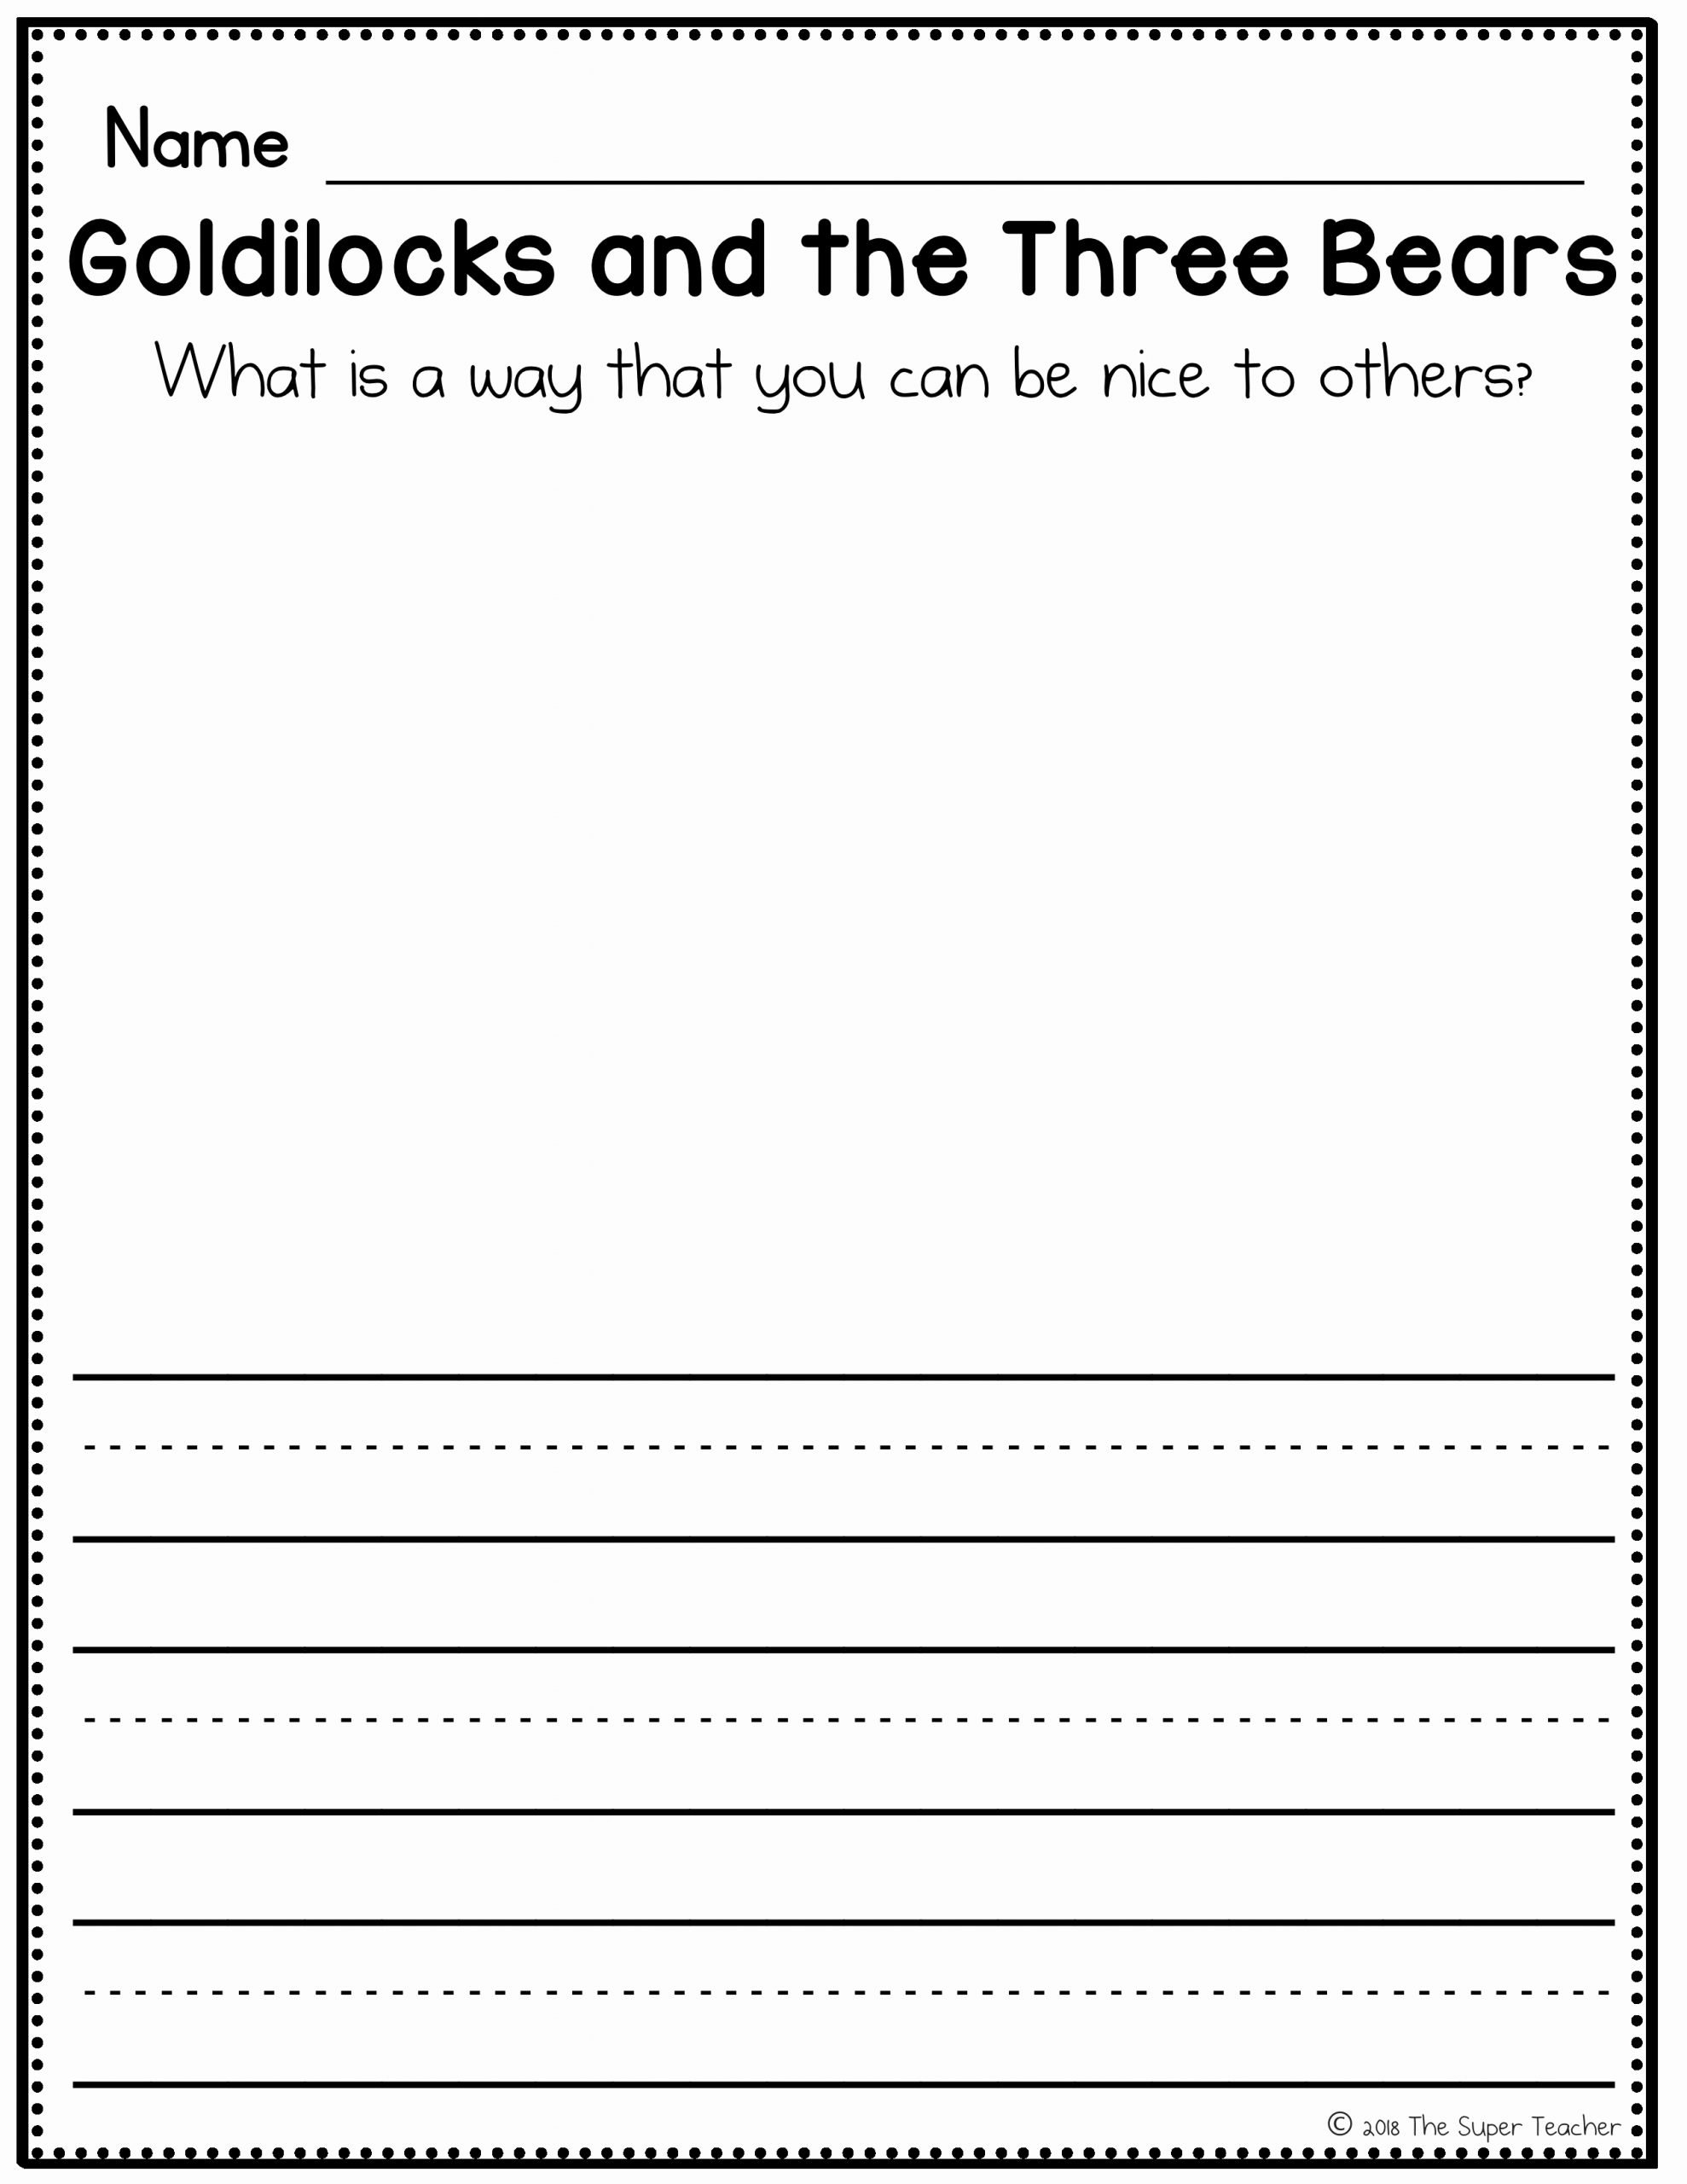 Goldilocks And The Three Bears Worksheets For Preschoolers